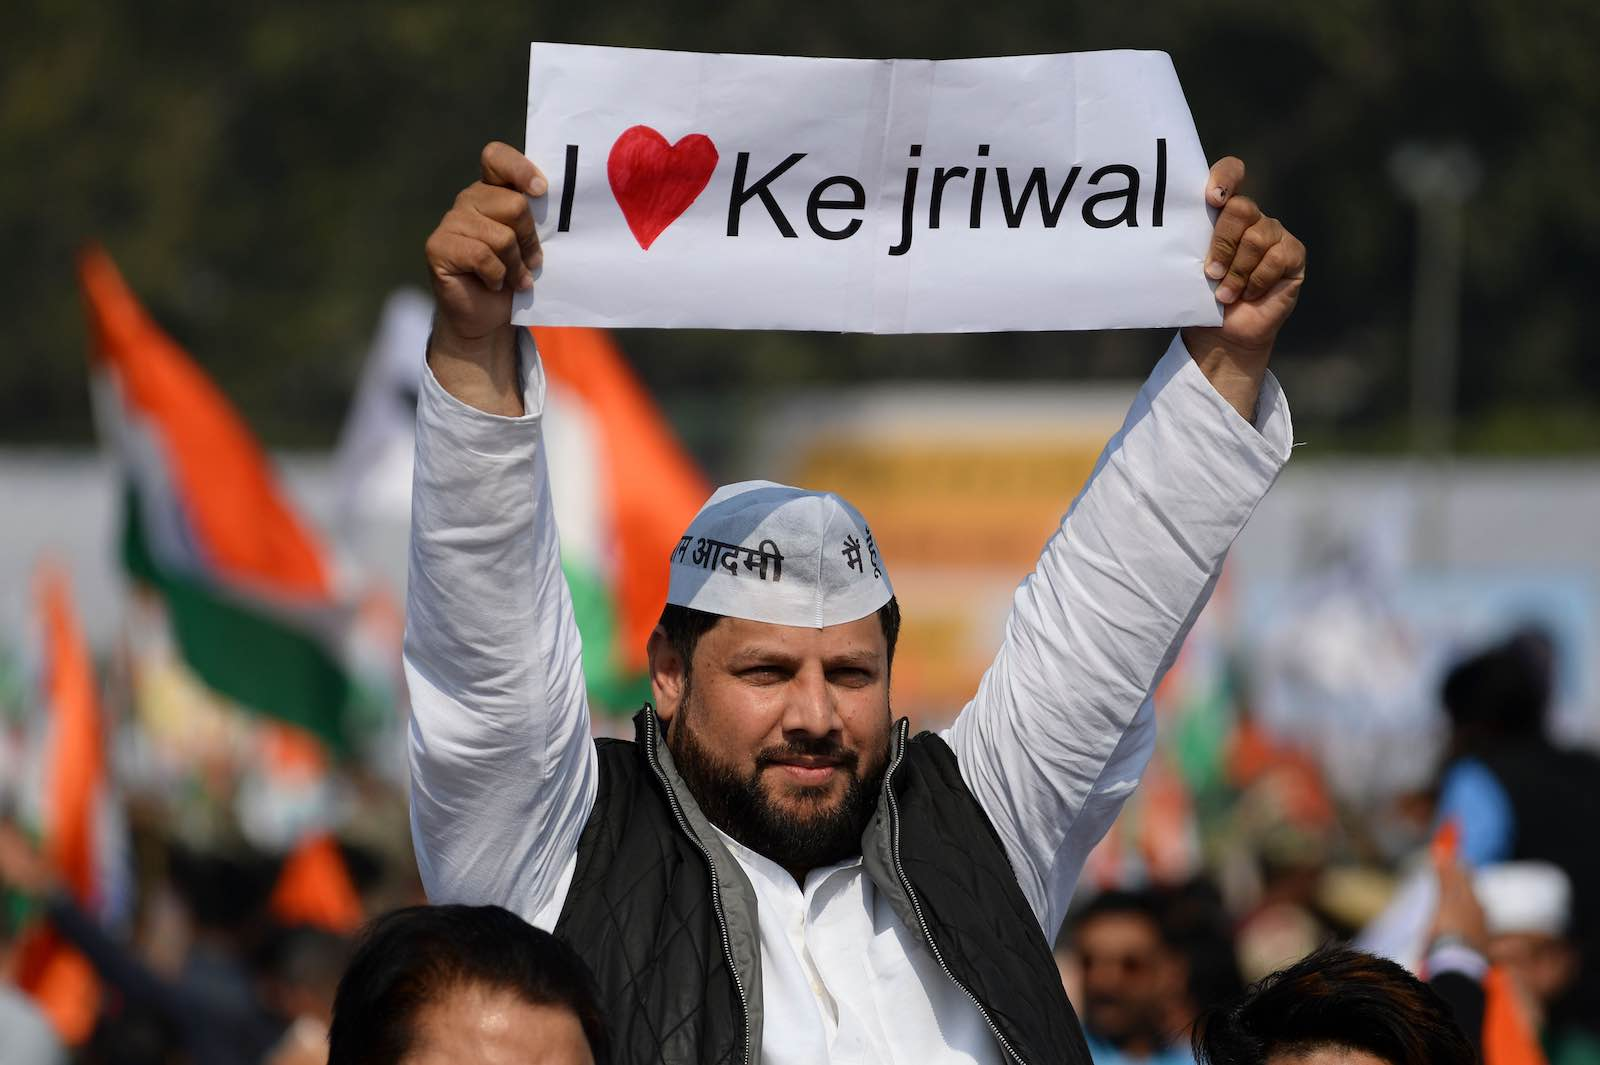 A supporter of the Aam Aadmi Party after Arvind Kejriwal's victory as Delhi Chief Minister (Photo: Sajjad Hussain/AFP/Getty Images)